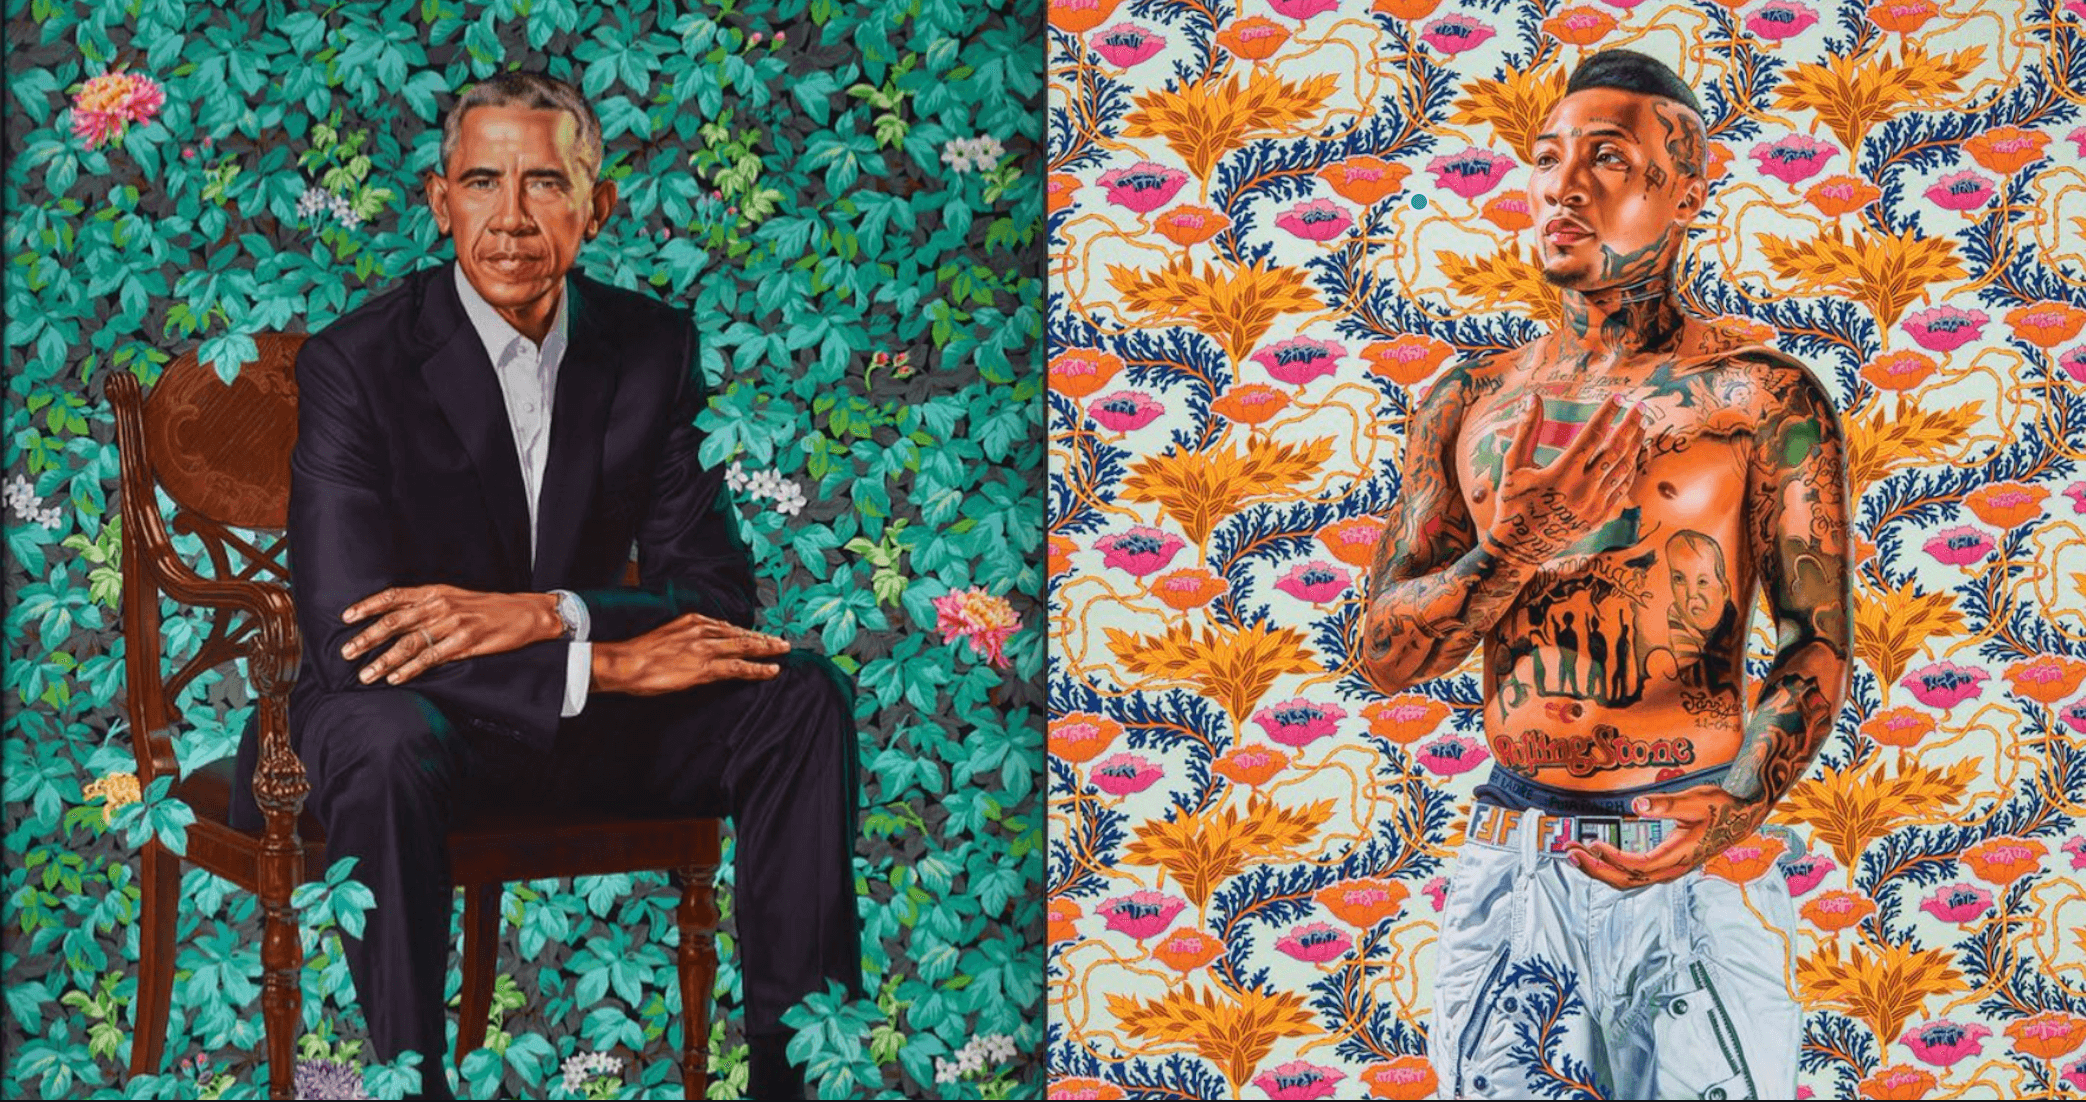 The man behind Barack Obama's official portrait has artwork on display in Montreal